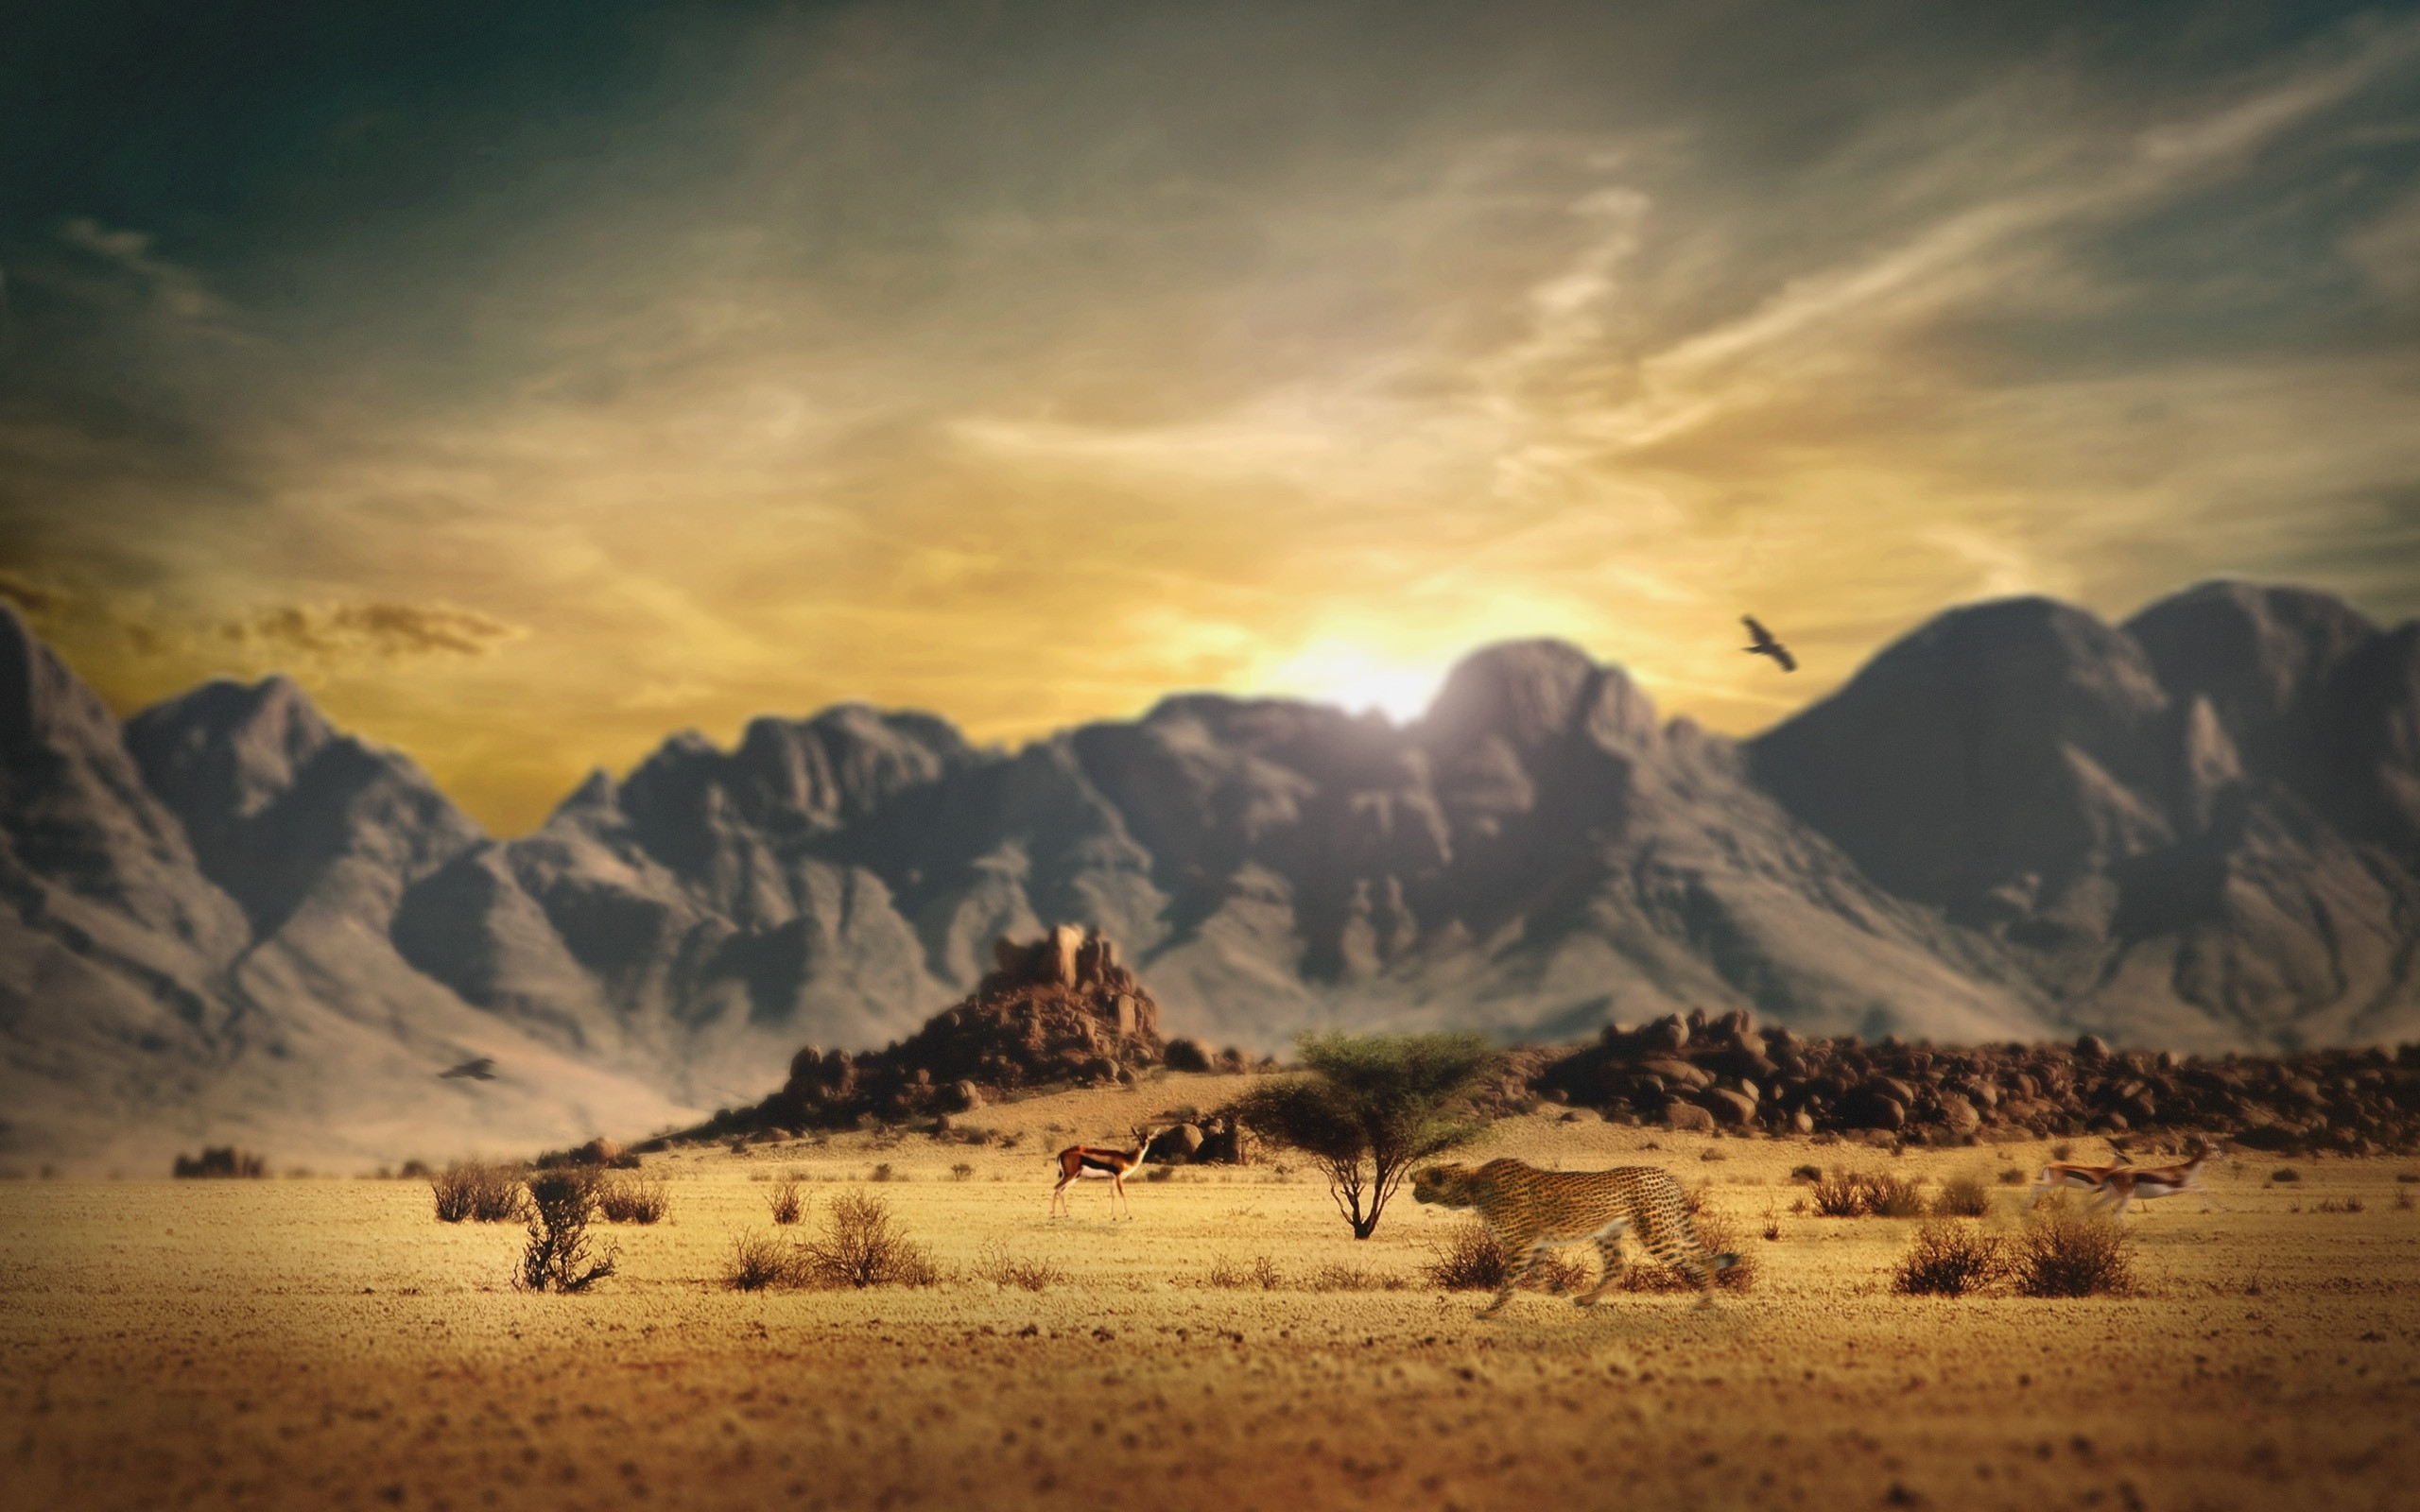 wallpaper.wiki-Wild-Country-Western-Background-PIC-WPD00118